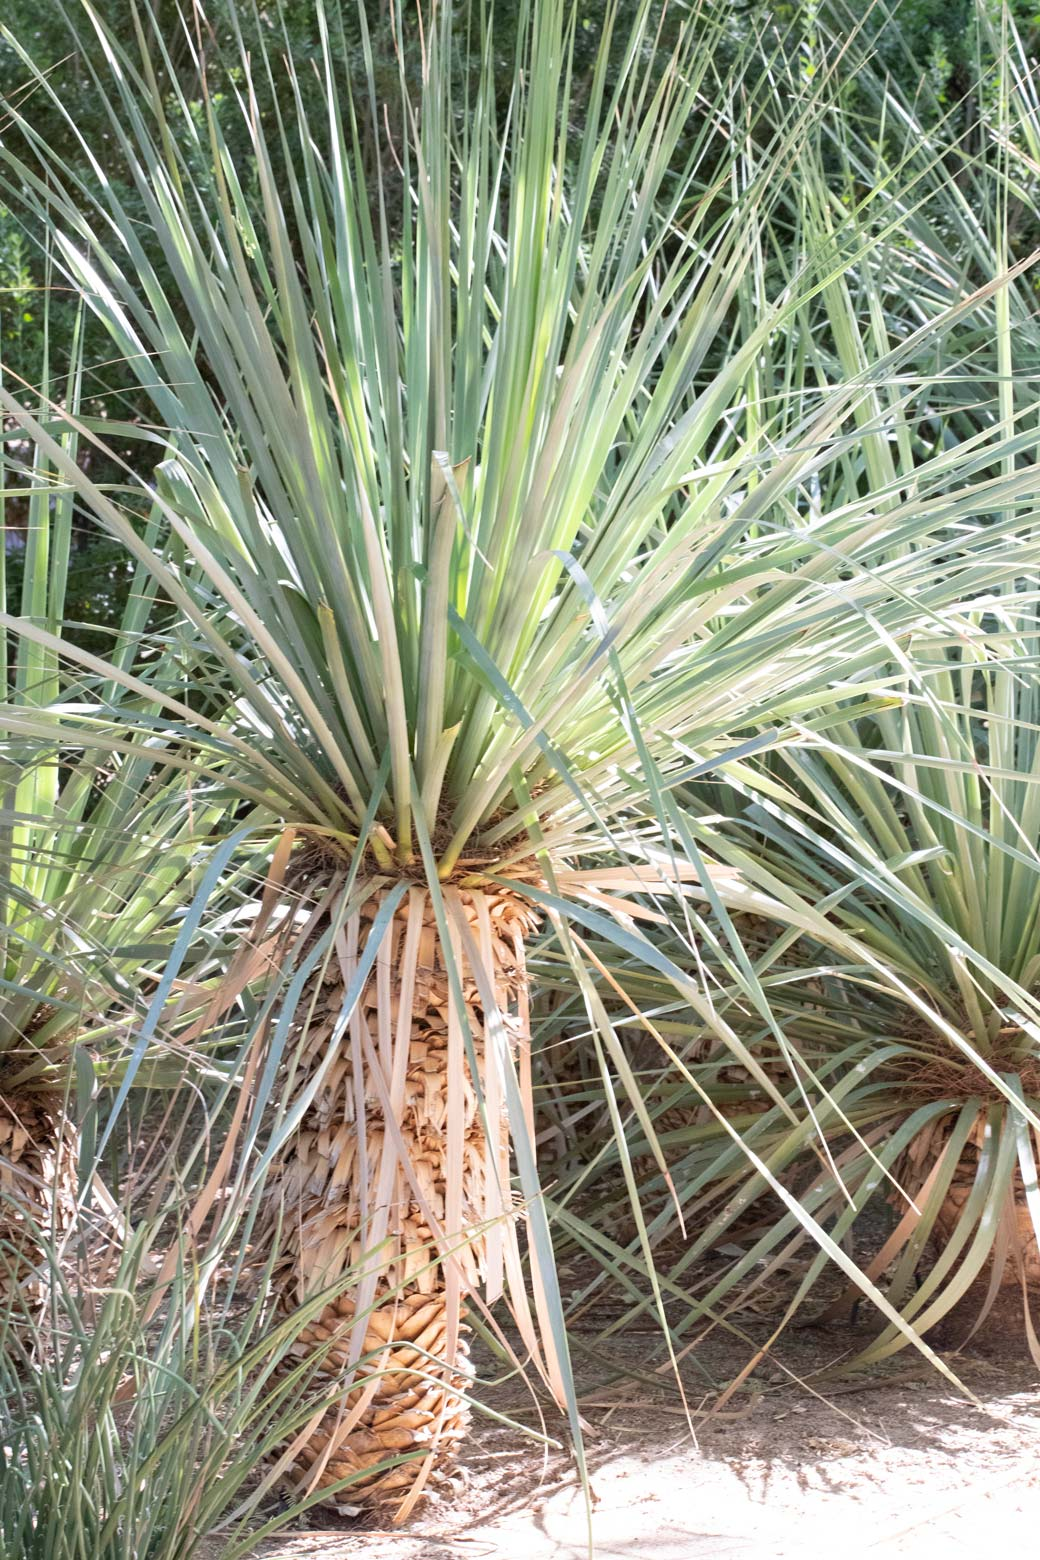 A single Beaked Yucca in the Gardens.